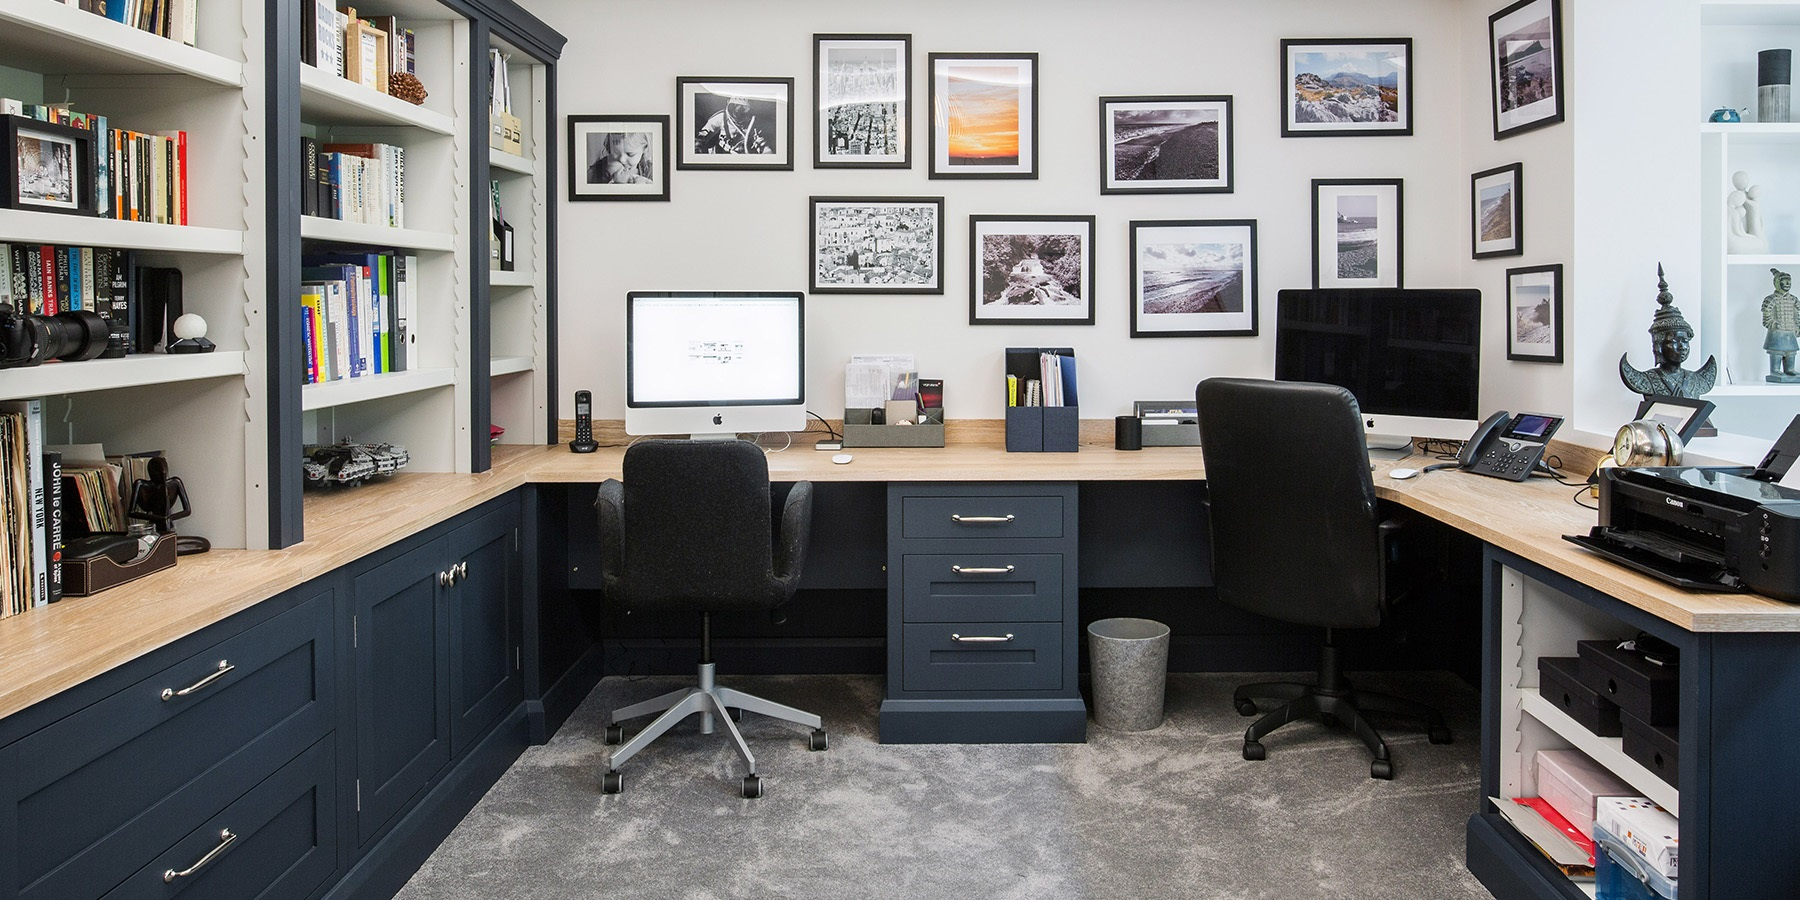 Bespoke Home Office Furniture - Handmade home office furniture and storage solutions, with book shelves and designated desk space.